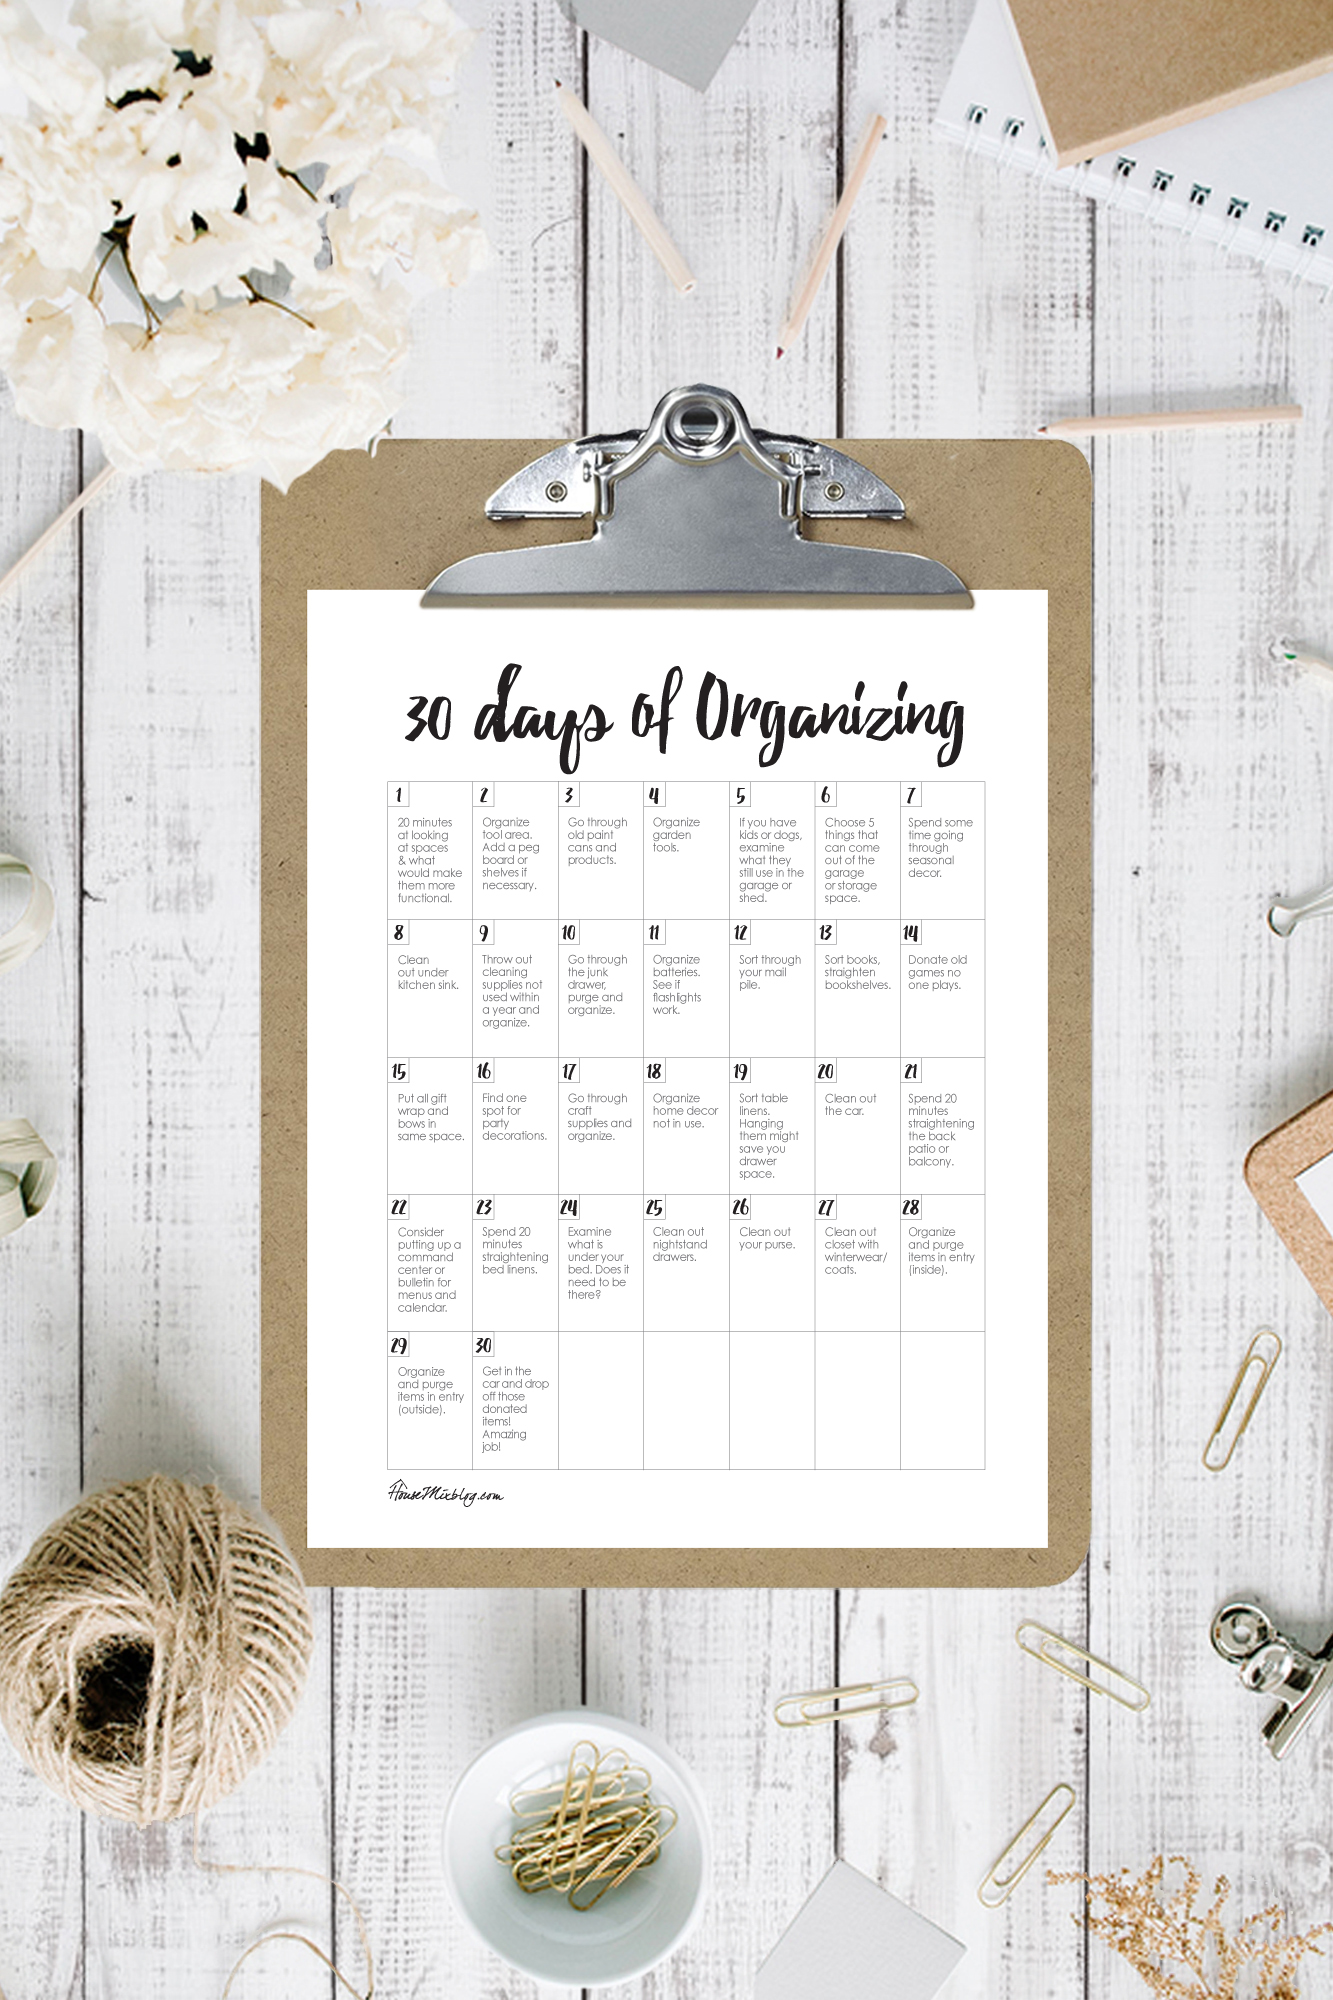 Ultimate organize house planner printables - 1 month of organizing - 30 day calendar for organization